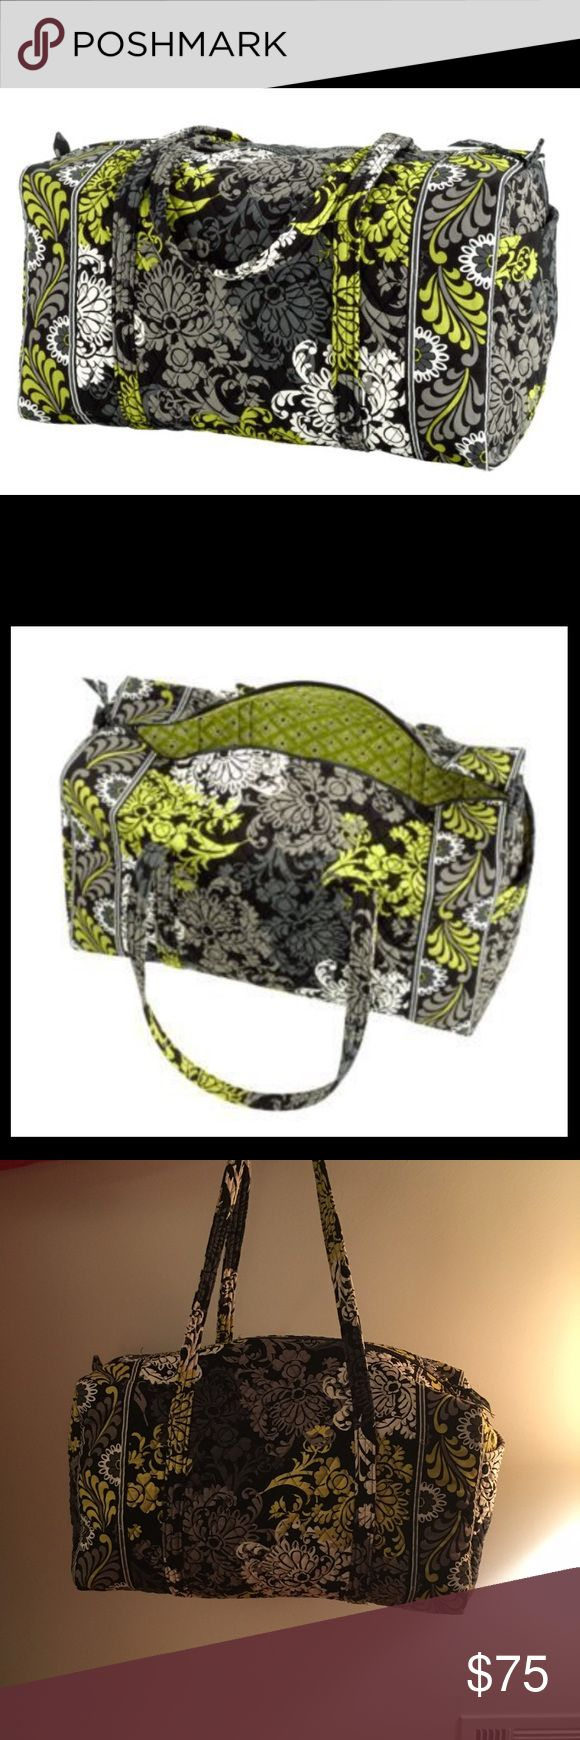 Vera Bradley Large Duffel in Baroque Print Preloved Vera Bradley large duffel in Baroque print. Green, white, and black. Perfect for travel! Please note first 2 pictures are stock photos. Vera Bradley Bags Travel Bags